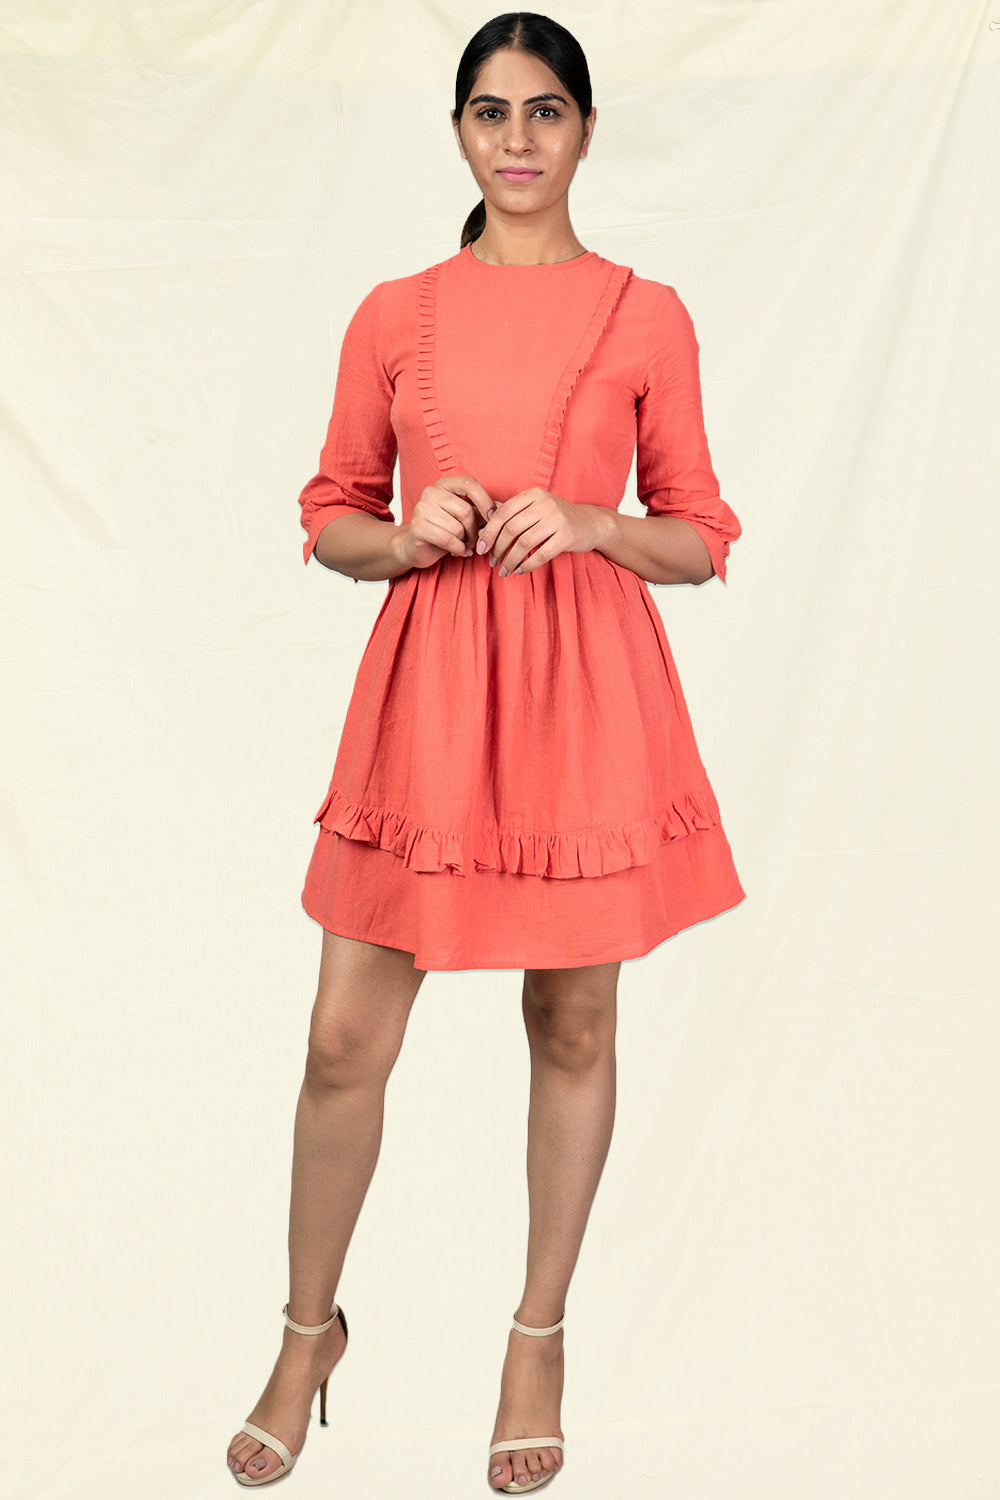 Organic Cotton Womens Skater Dress in Coral